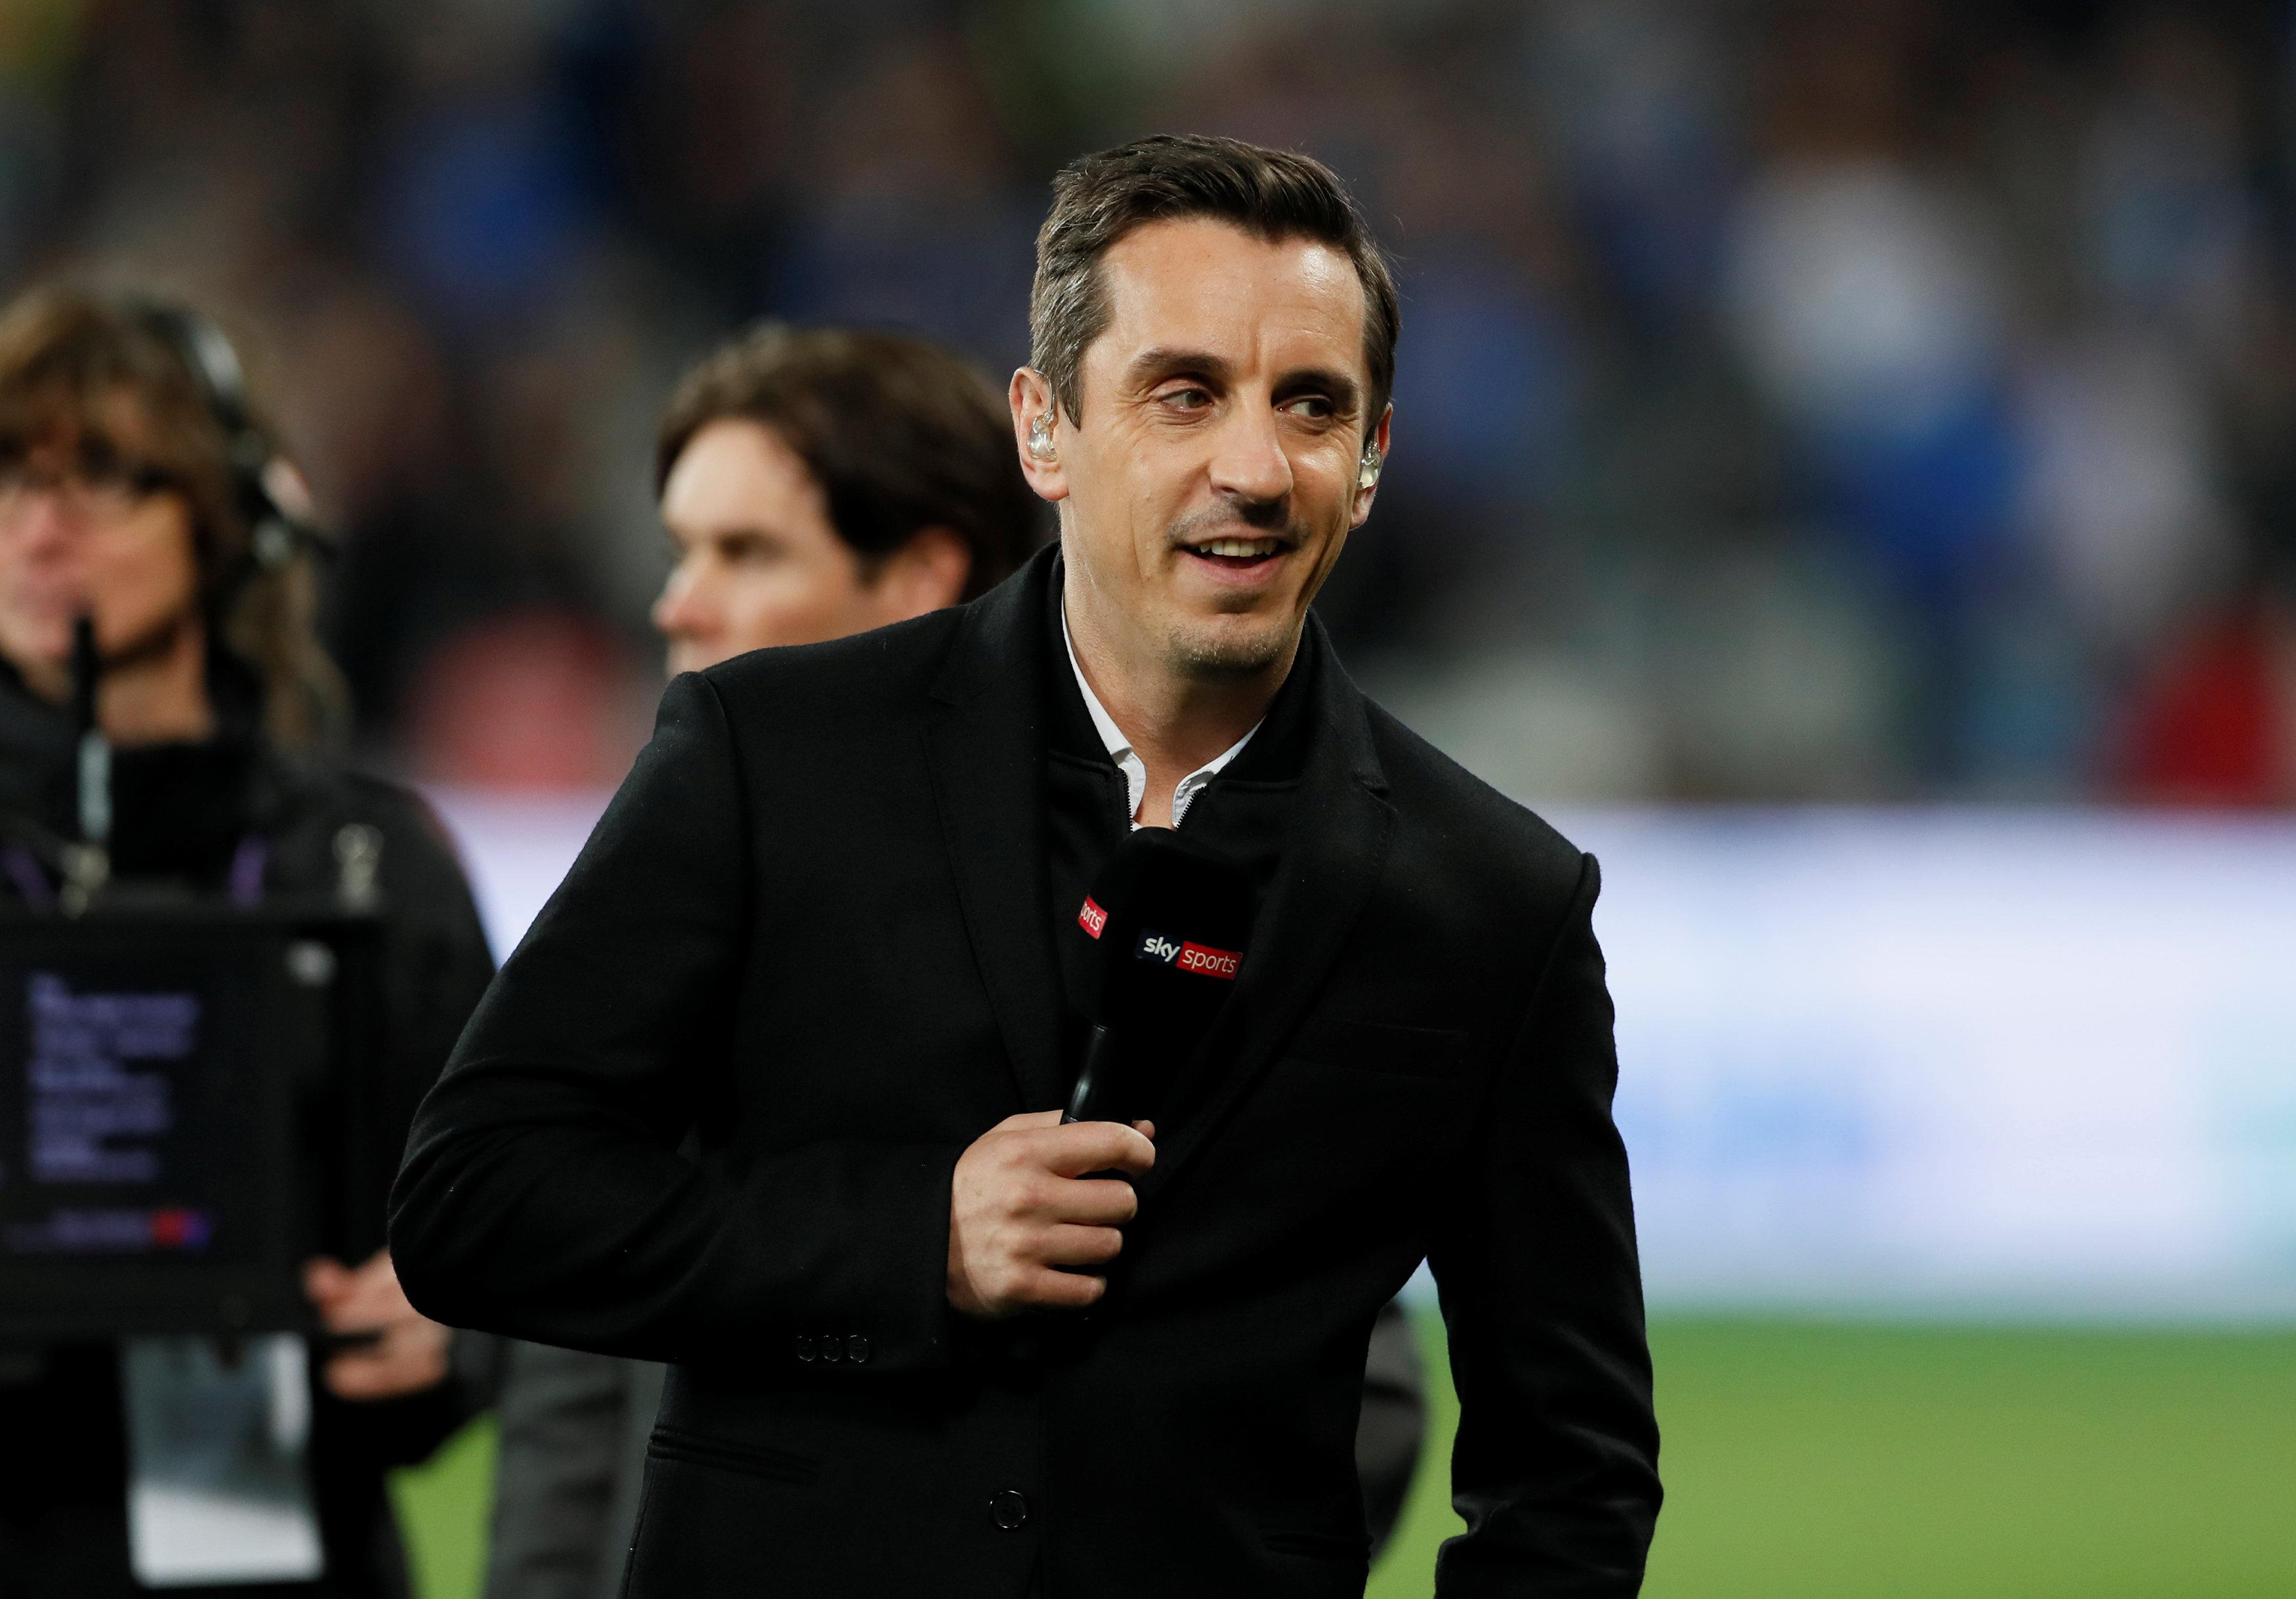 G Nev remains unconvinced by Martial